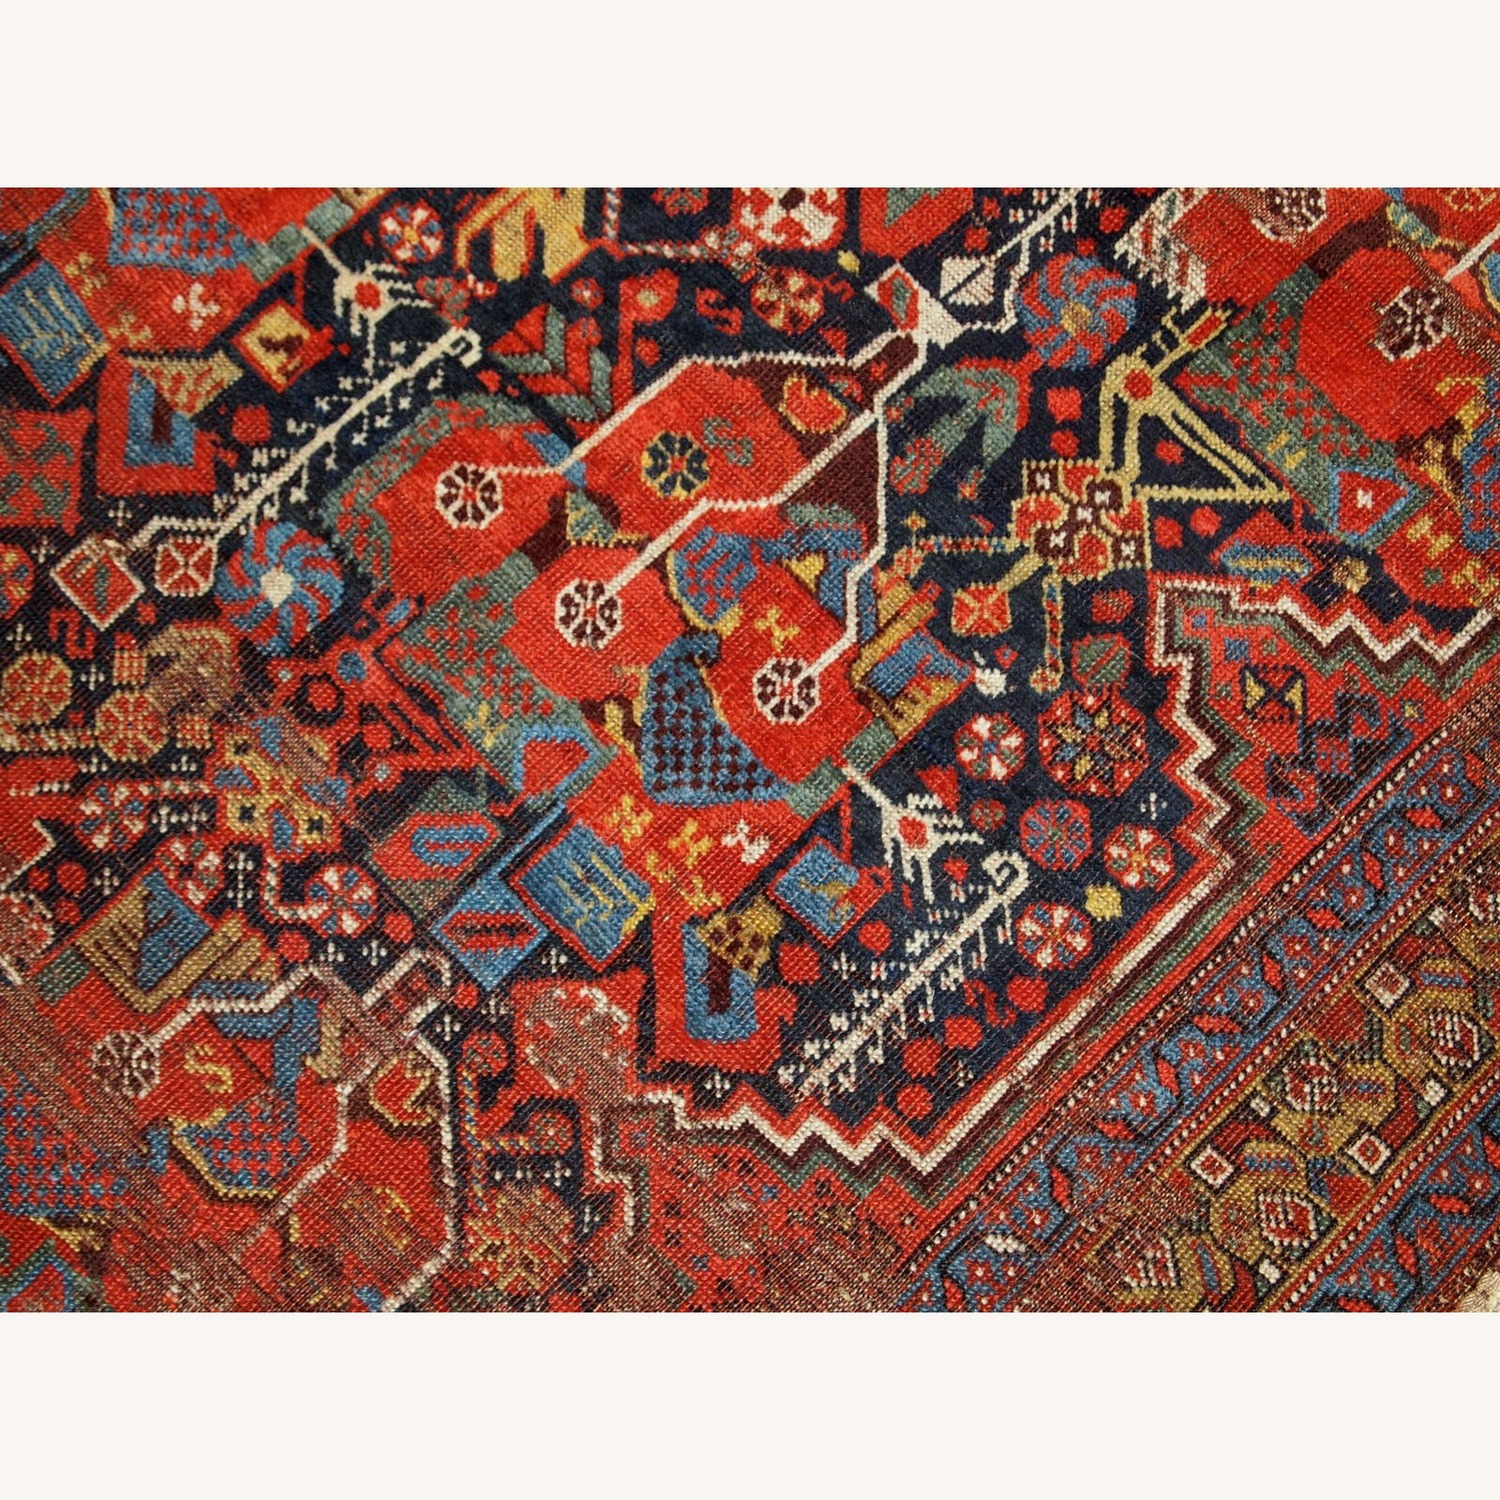 Handmade Antique Collectible Persian Khamseh Rug - image-5